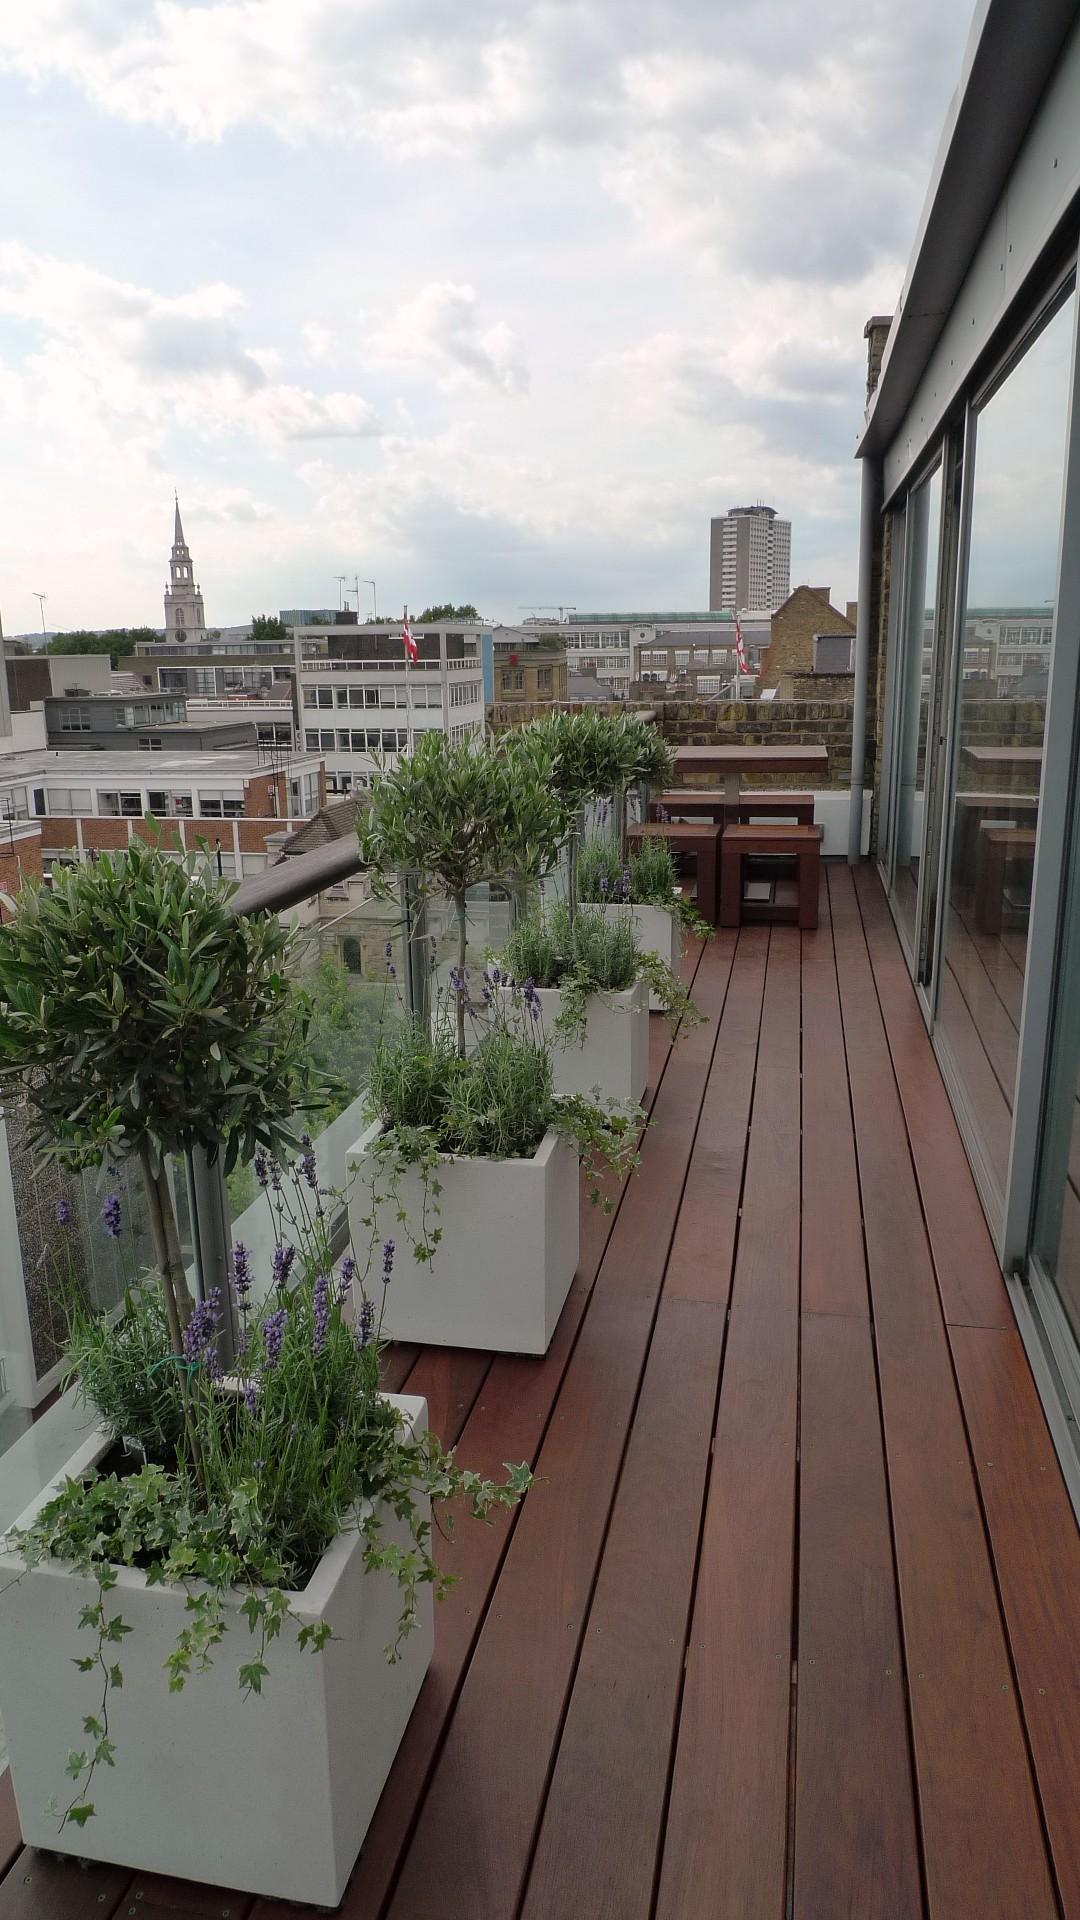 Ipe brazillian hardwood deck decking installation builders garden designers islington central london roof garden (12)